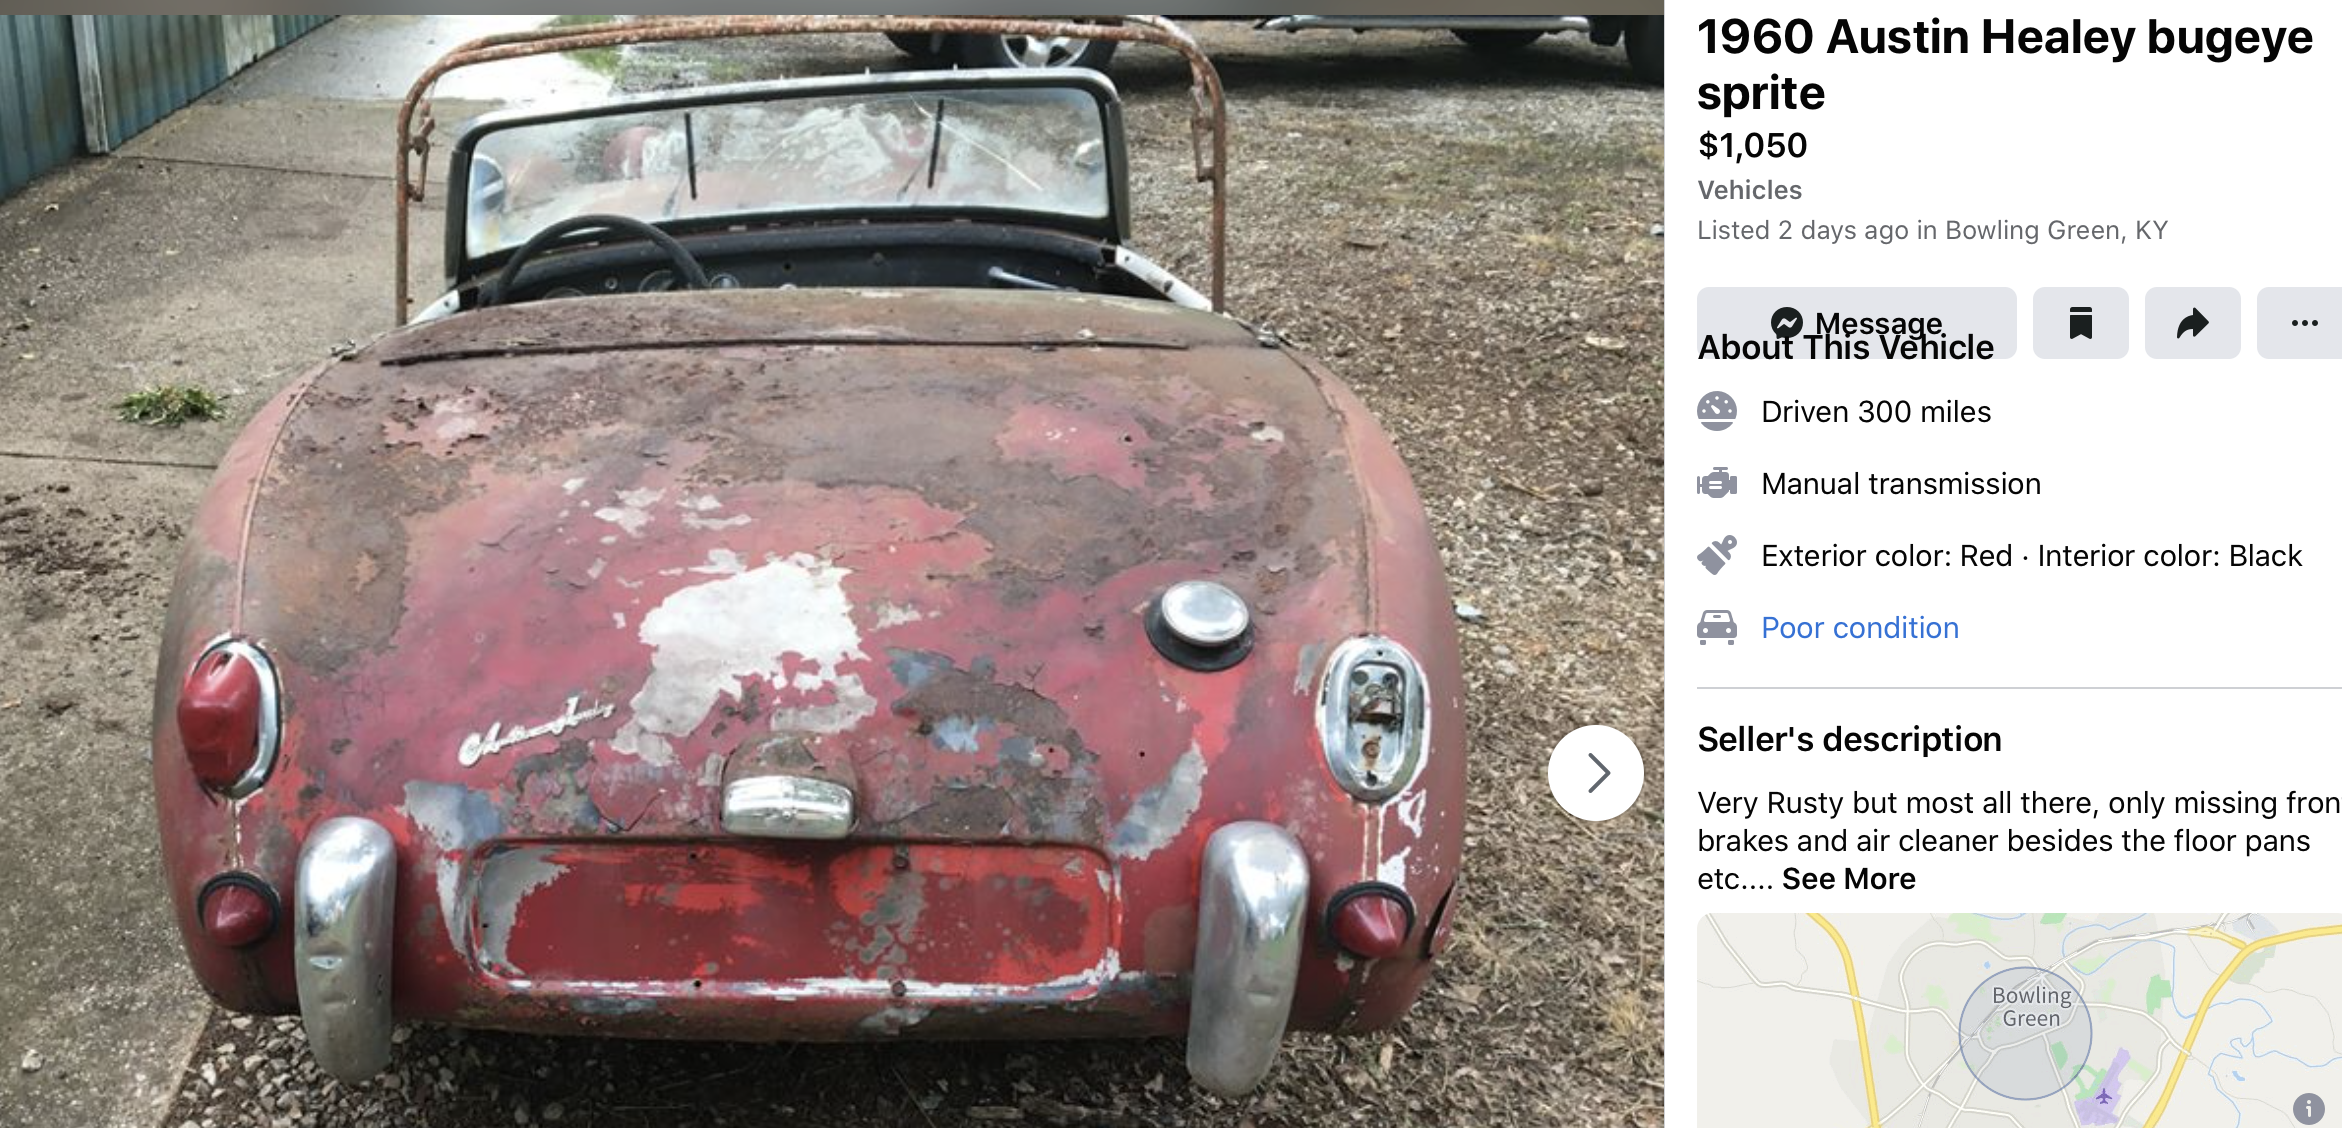 1960 Healy Bugeye Sprite Colorful Interiors Red Interiors Exterior Colors